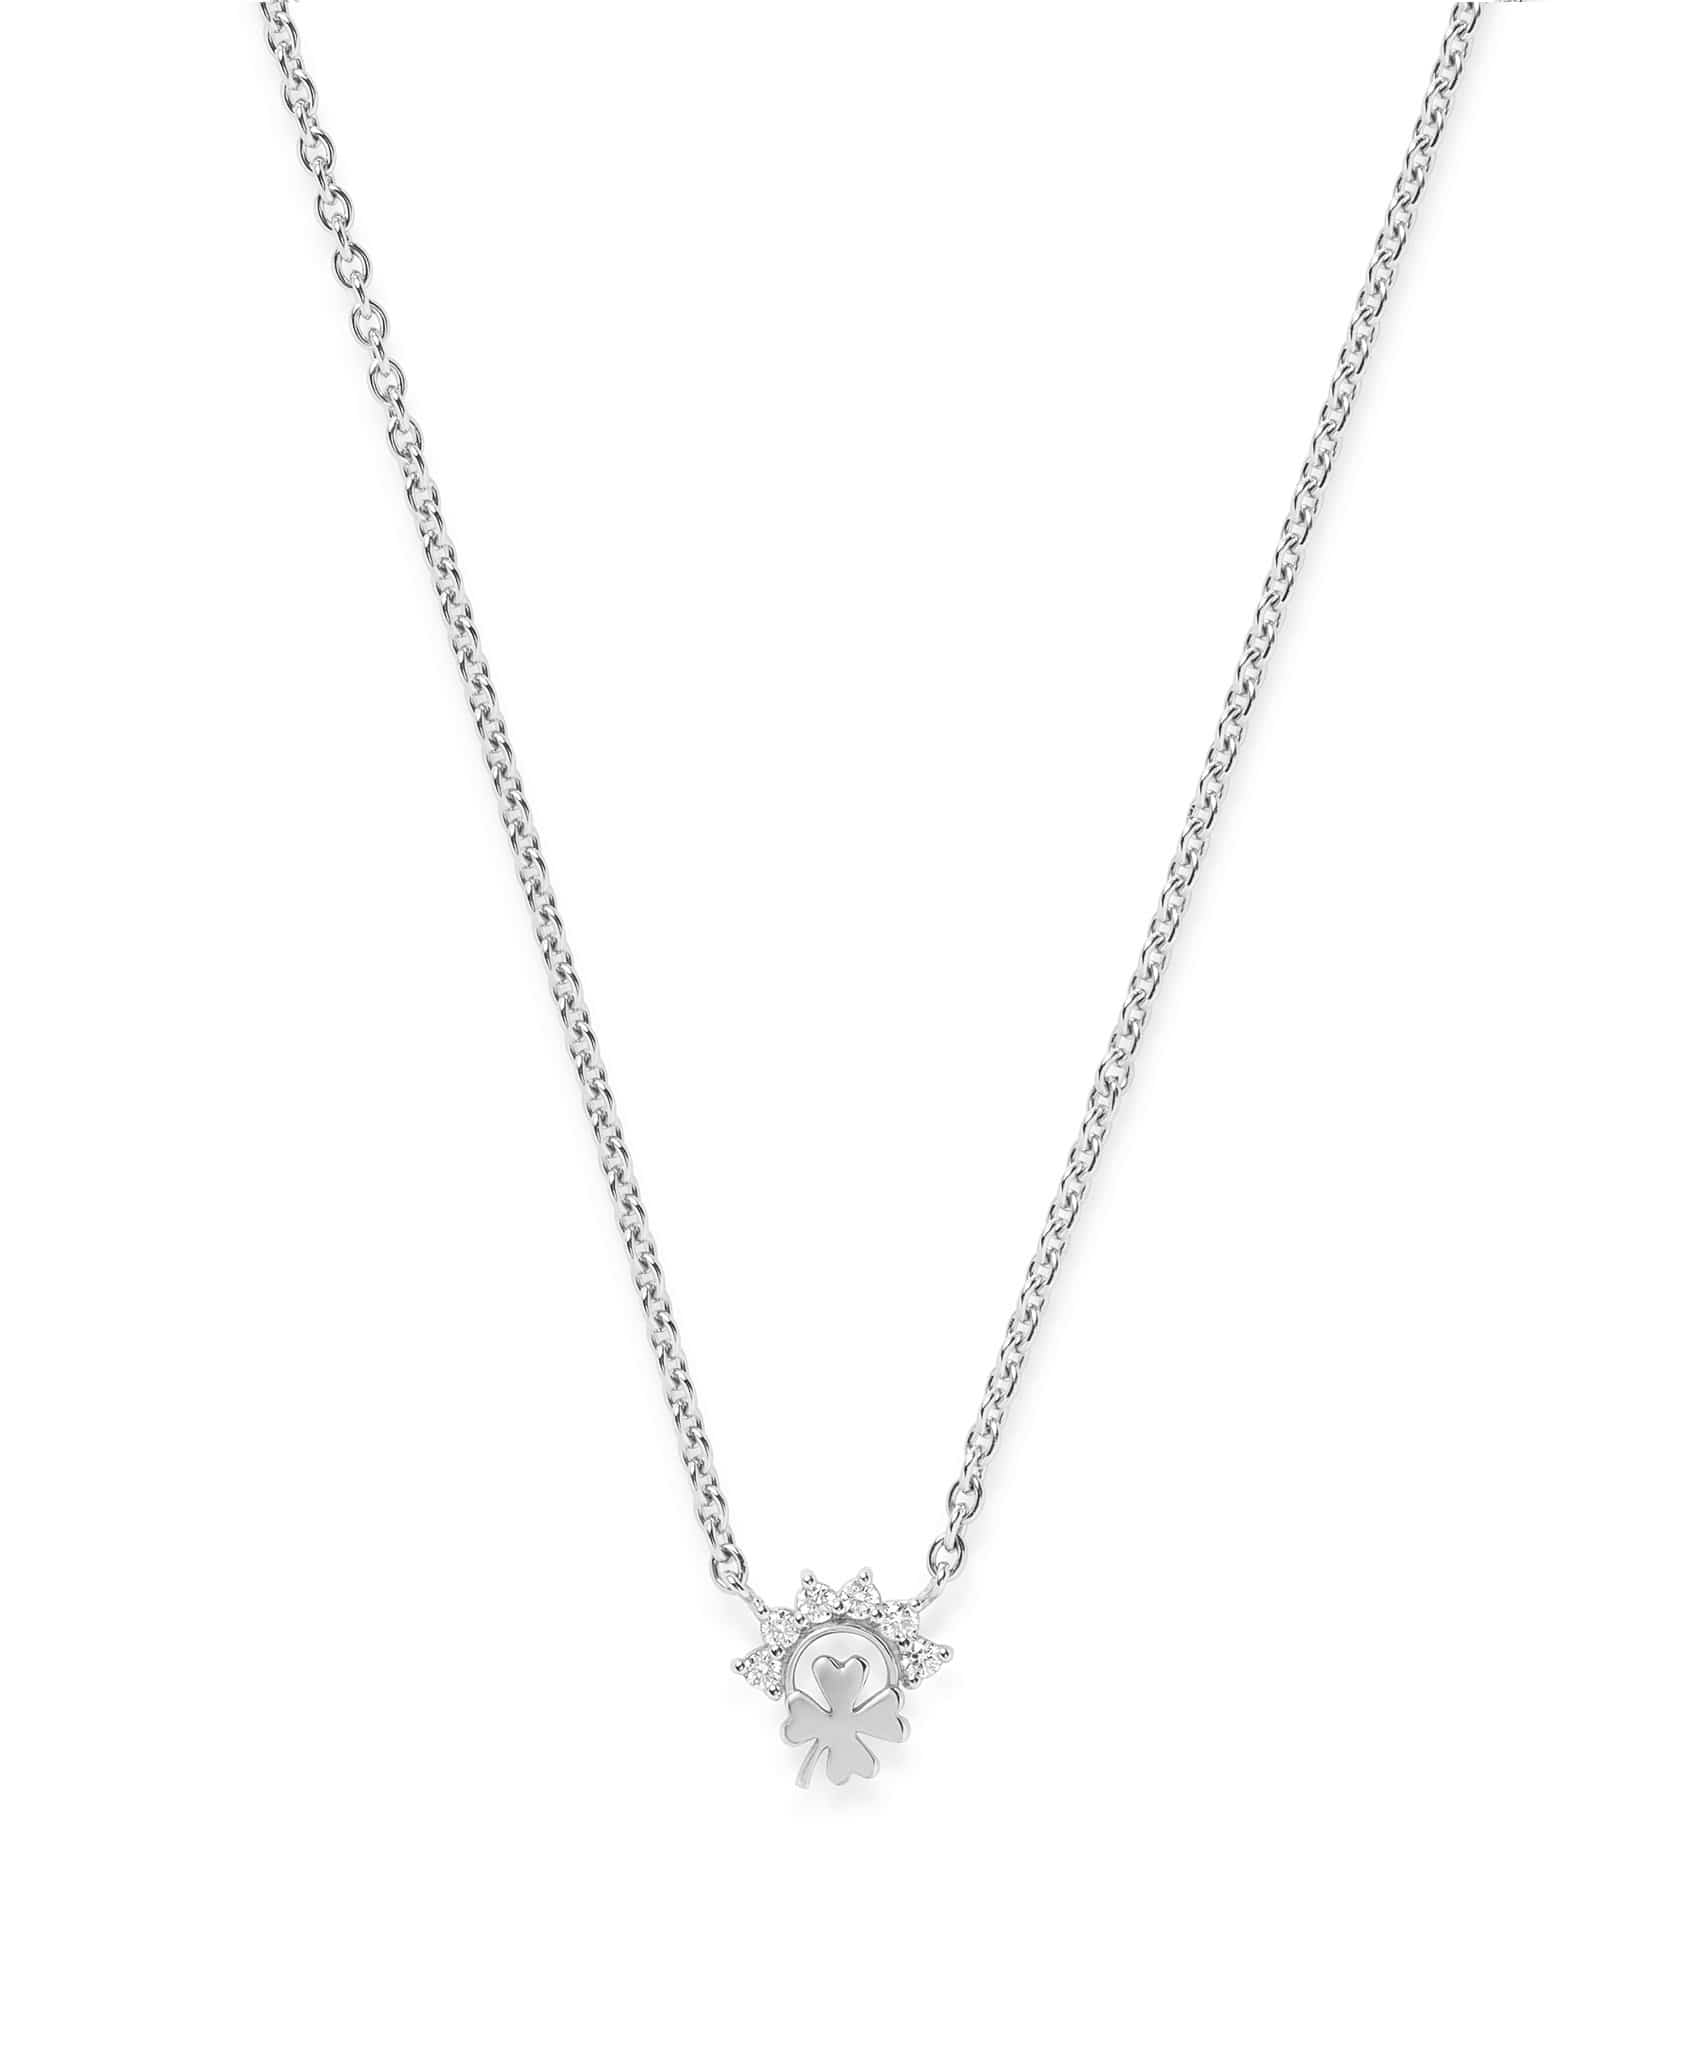 Small Luck Pendant: Discover Luxury Fine Jewelry | Nouvel Heritage || White Gold